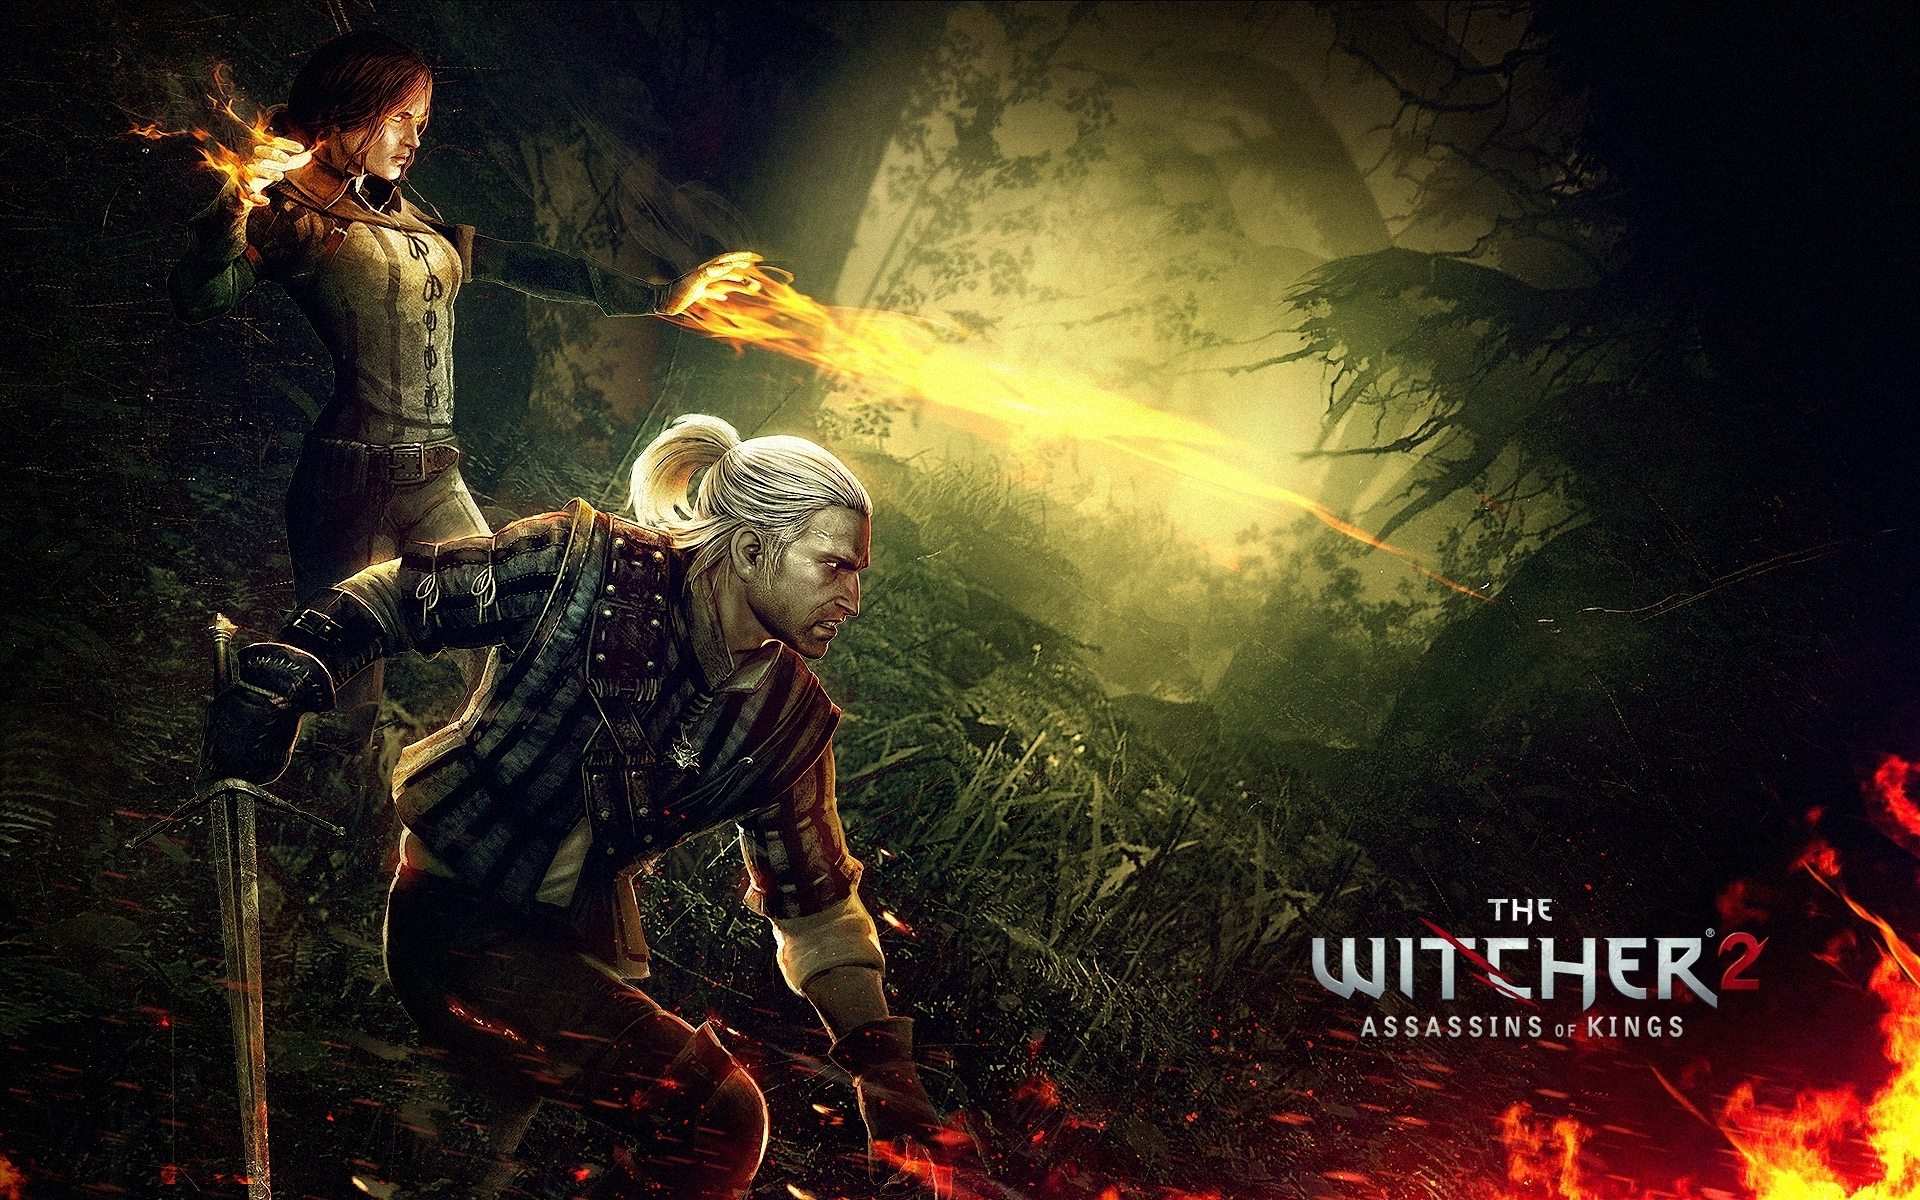 The Witcher 2 Assassins Of Kings HD Wallpaper Background Image 1920x1200